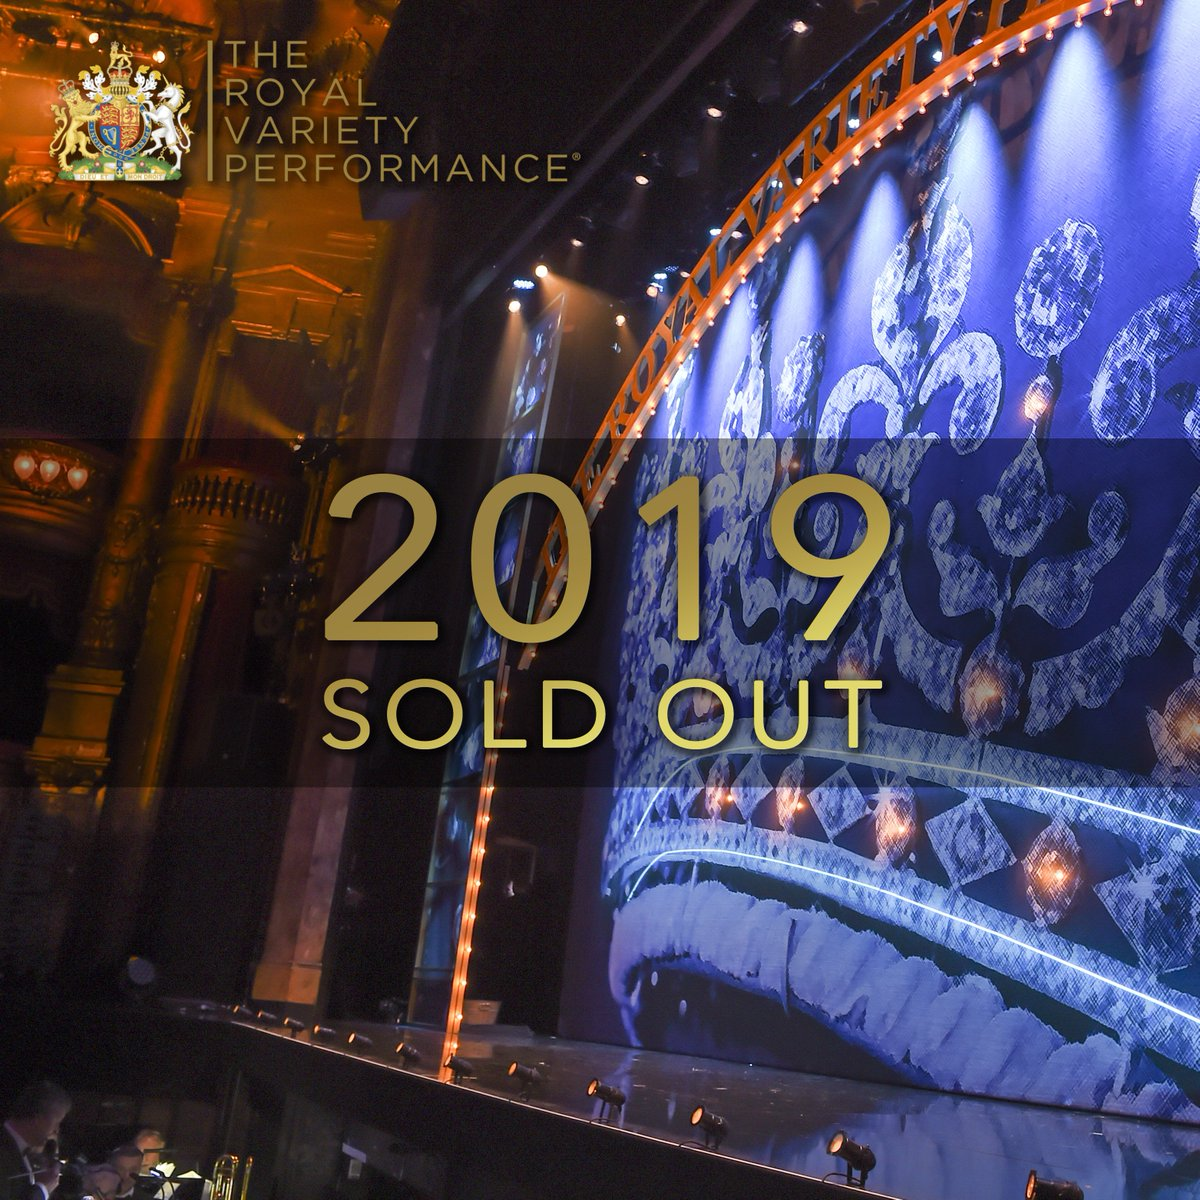 The Royal Variety Performance 2019 is now SOLD OUT! We can't wait to reveal this year's stellar line-up... Look out for announcements coming soon. #RoyalVarietyPerformance #Variety4Charity #2019 #RoyalVariety #RVP